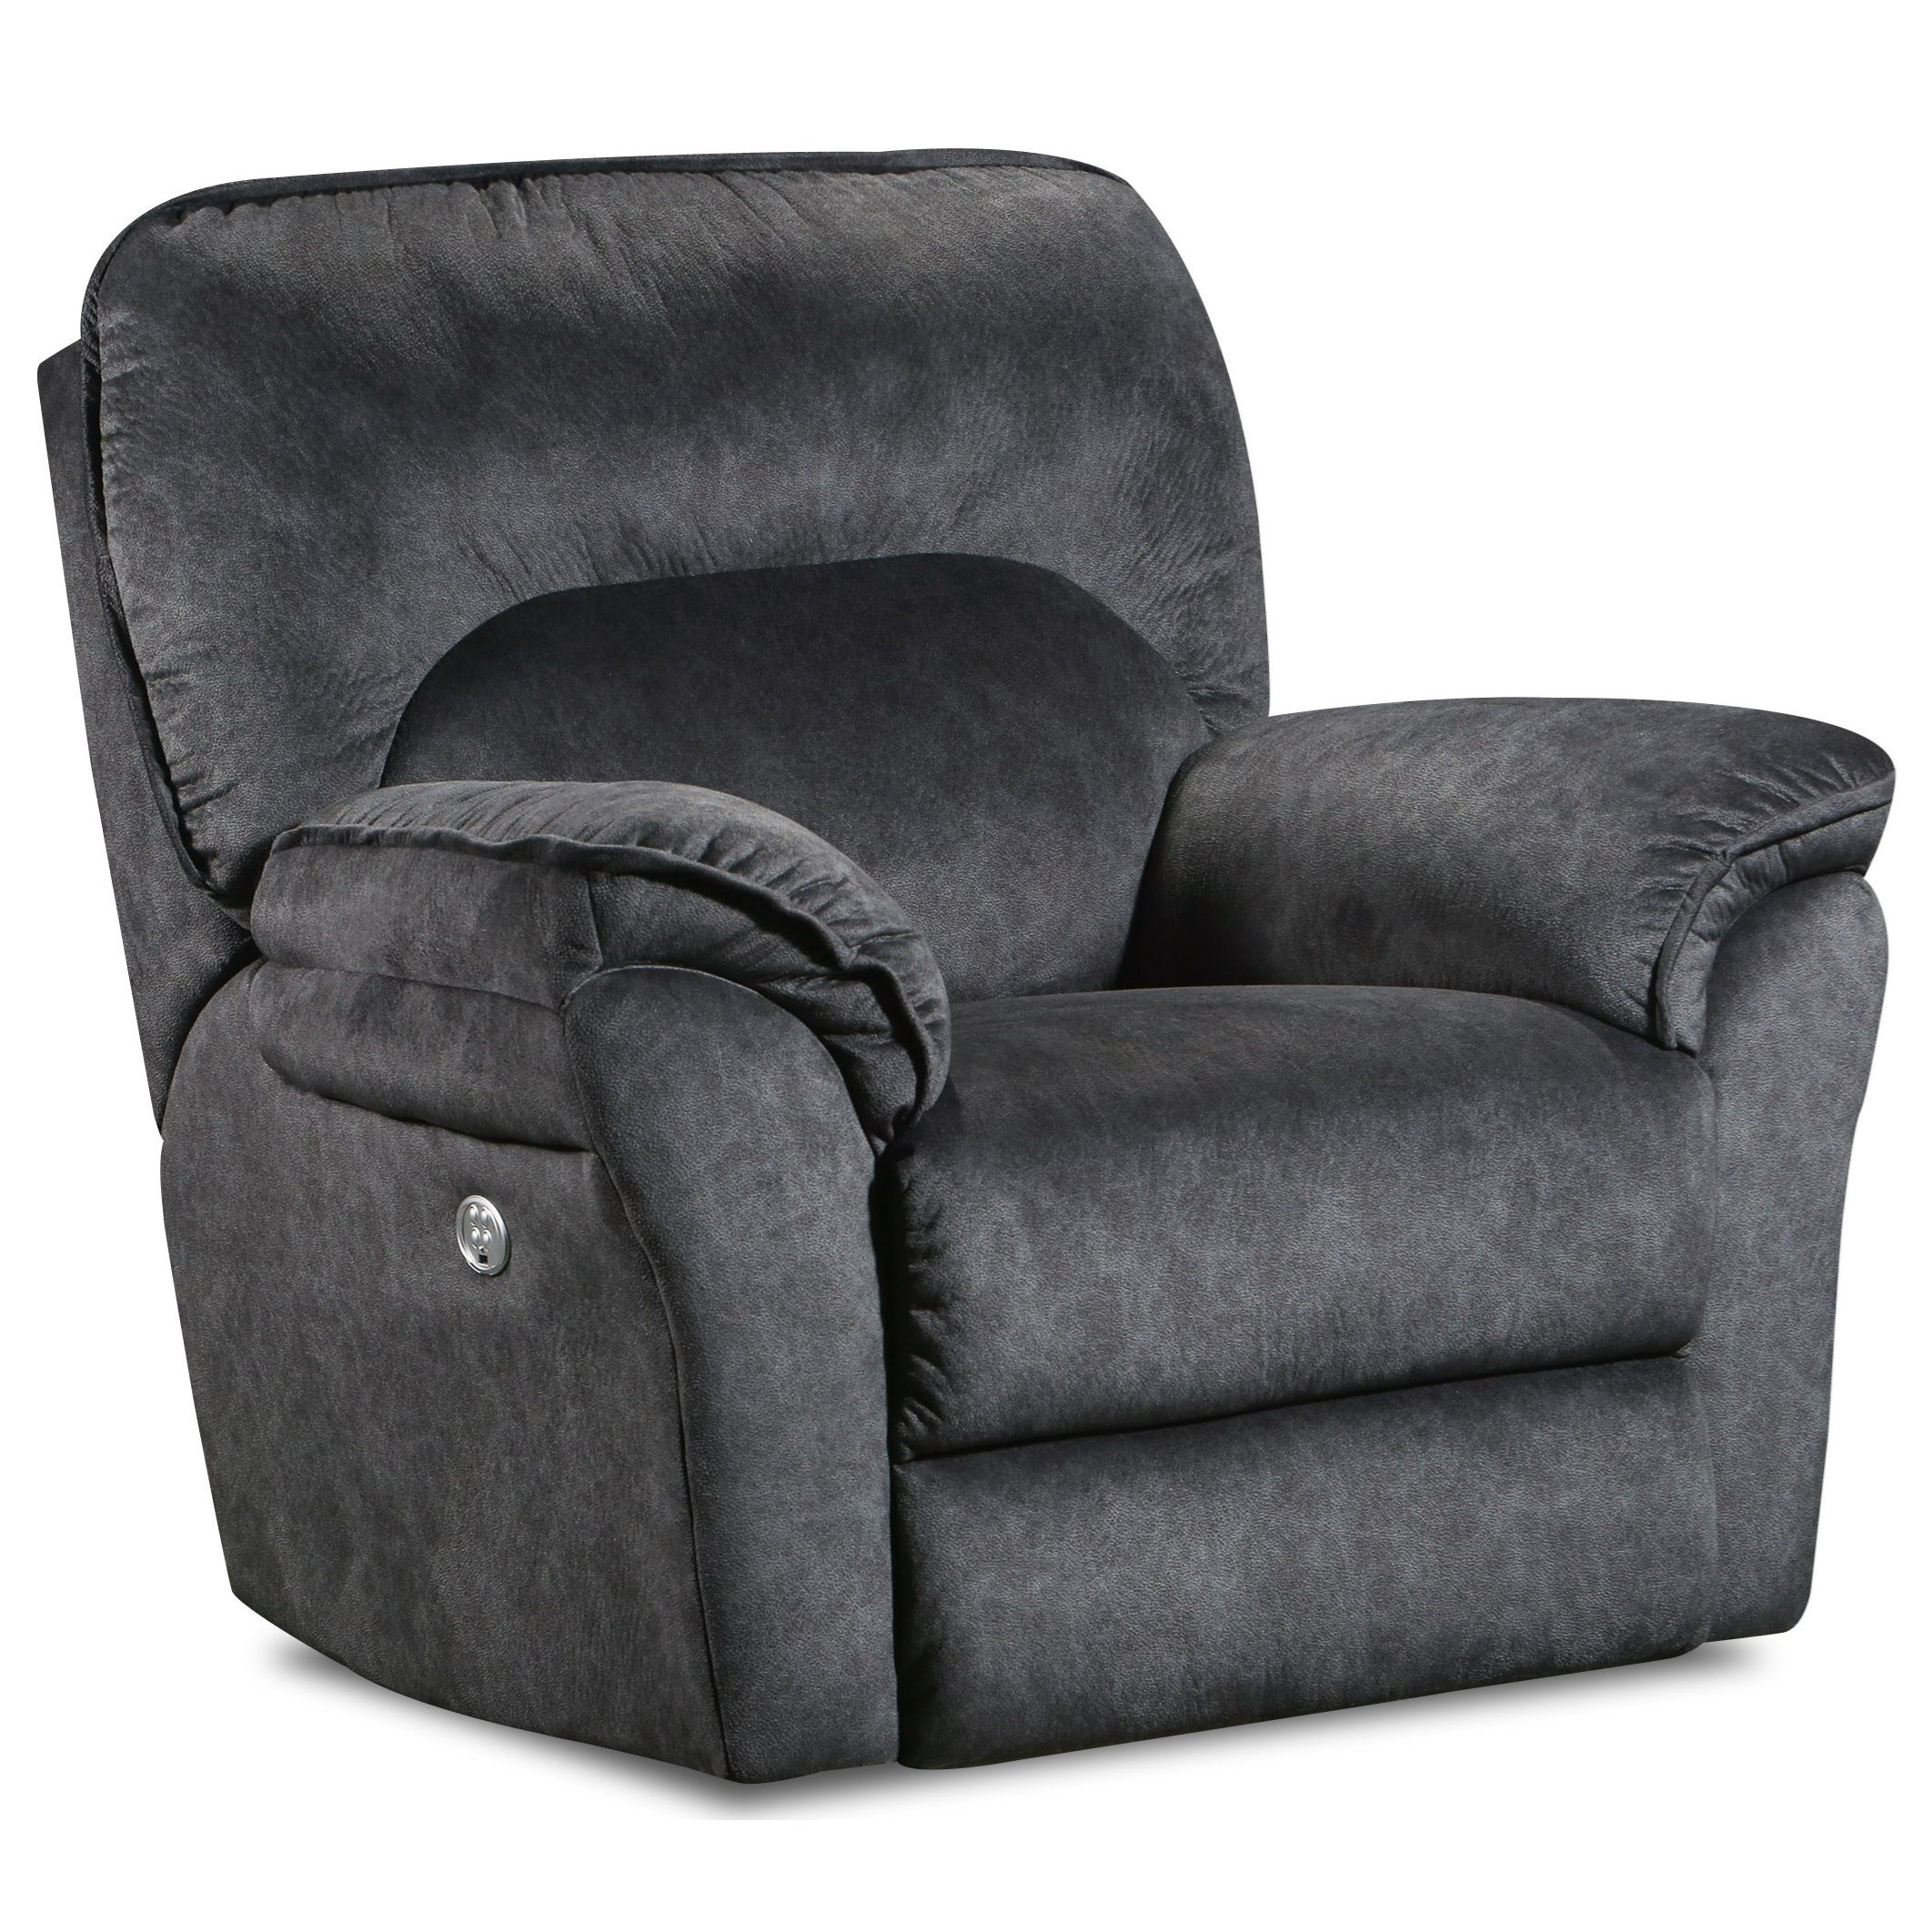 Full Ride Power Headrest Wallhugger Recliner W/ Socozi by Southern Motion at Turk Furniture